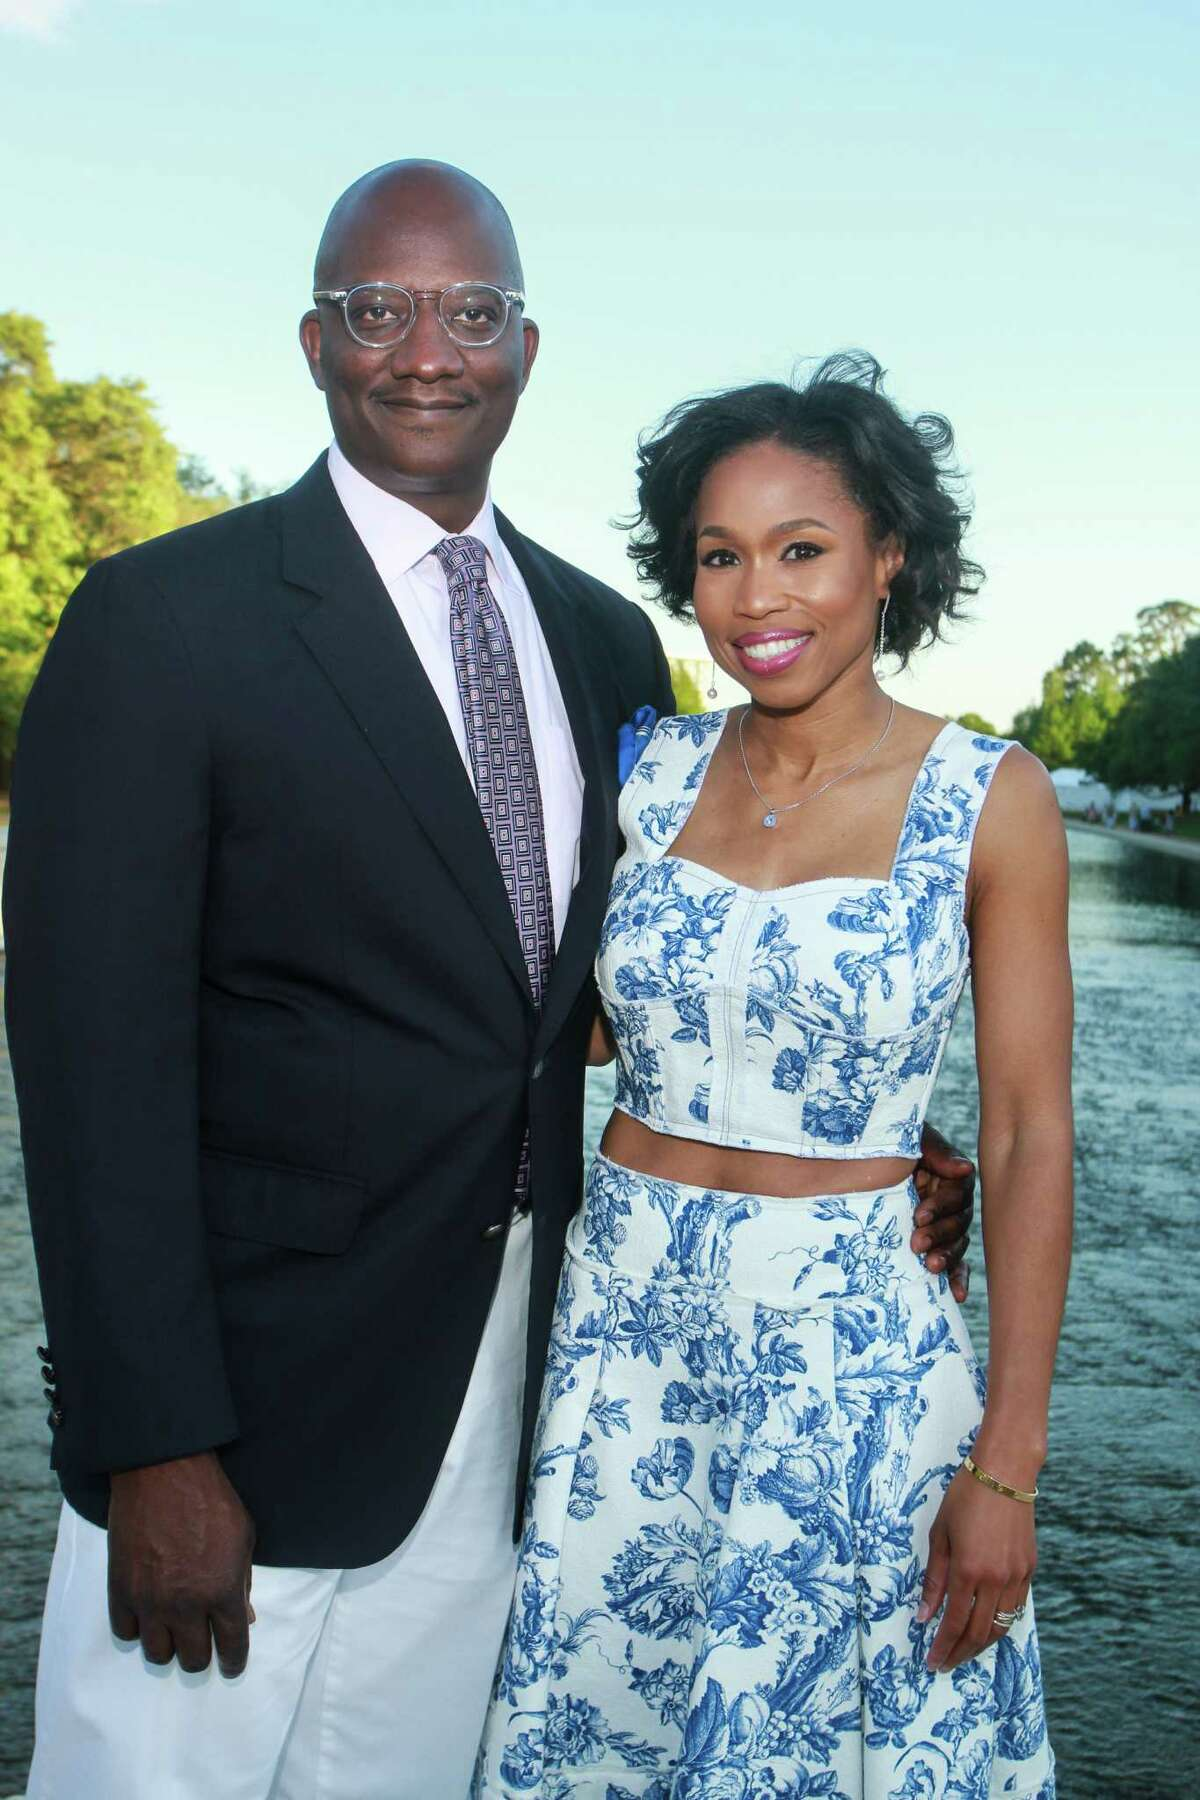 Derrick Mitchell and Roslyn Bazzelle Mitchell at Hermann Park's annual Evening in the Park.